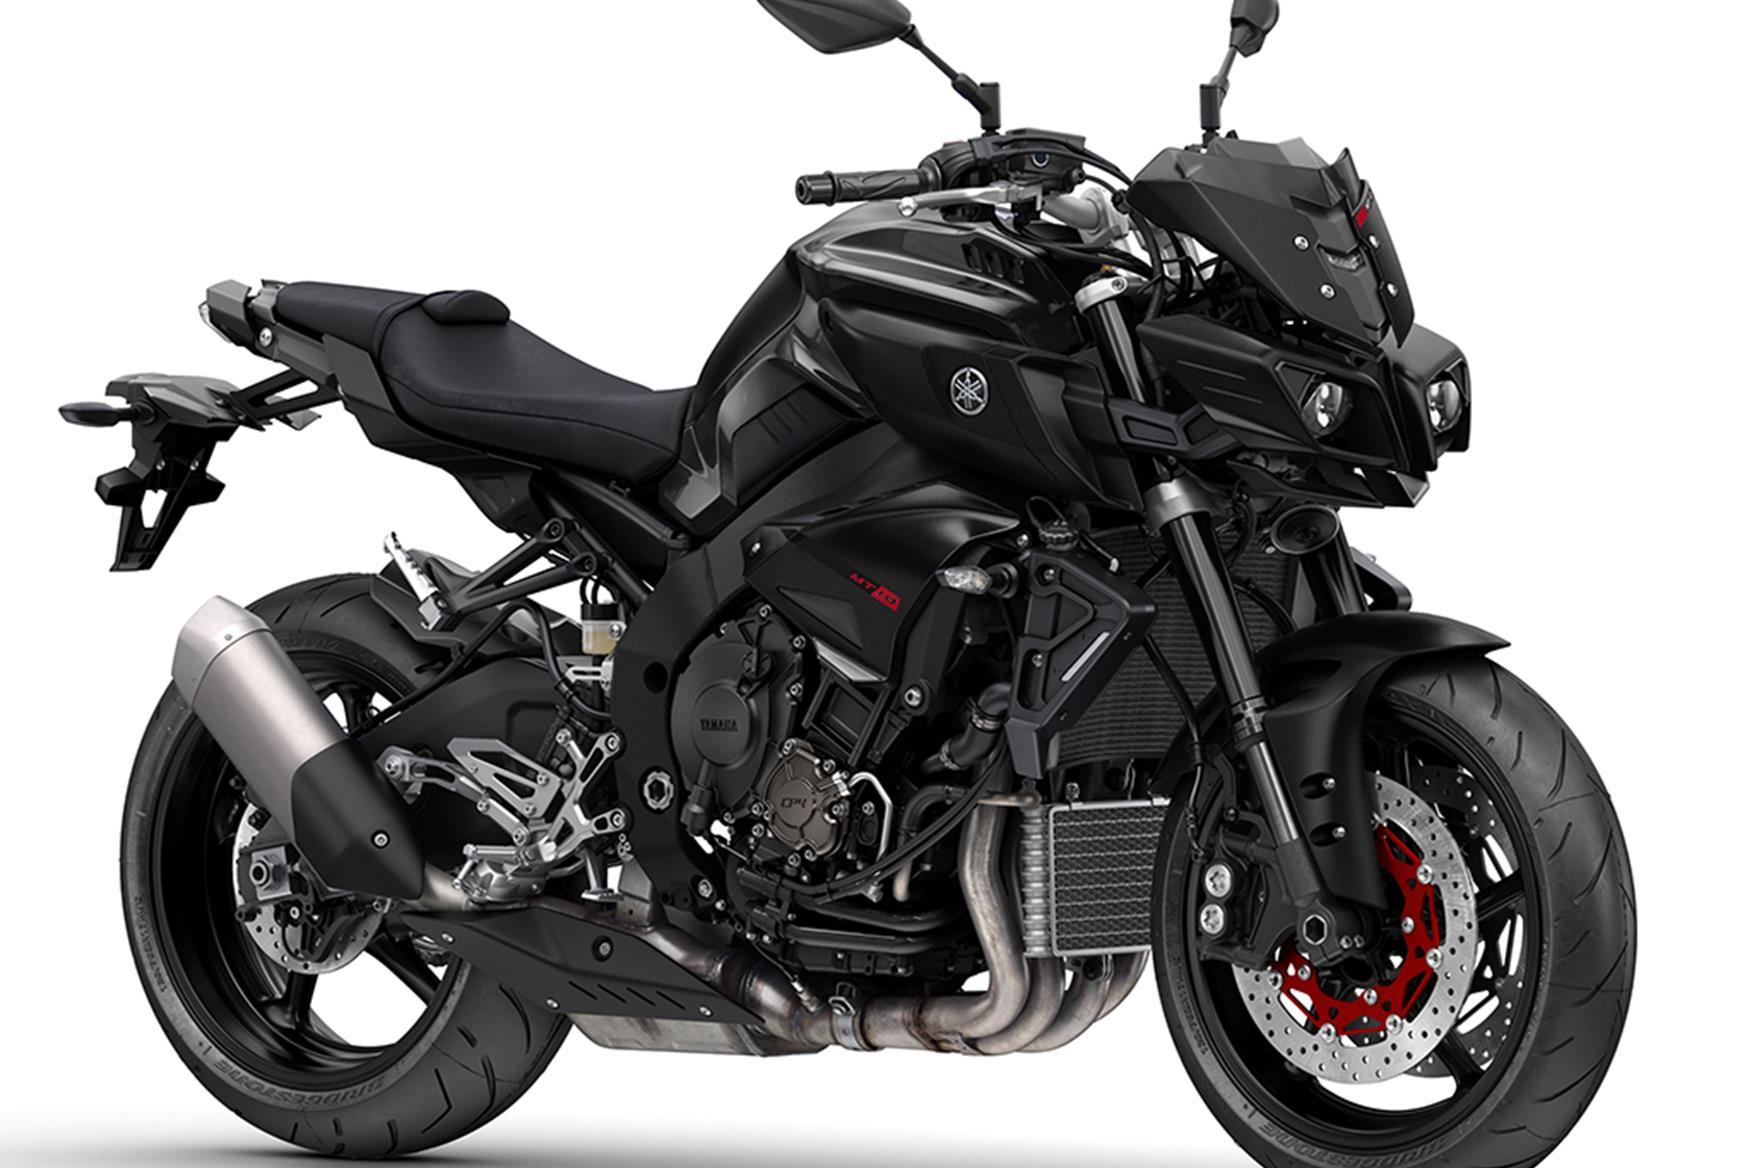 2016 yamaha mt 10. Black Bedroom Furniture Sets. Home Design Ideas